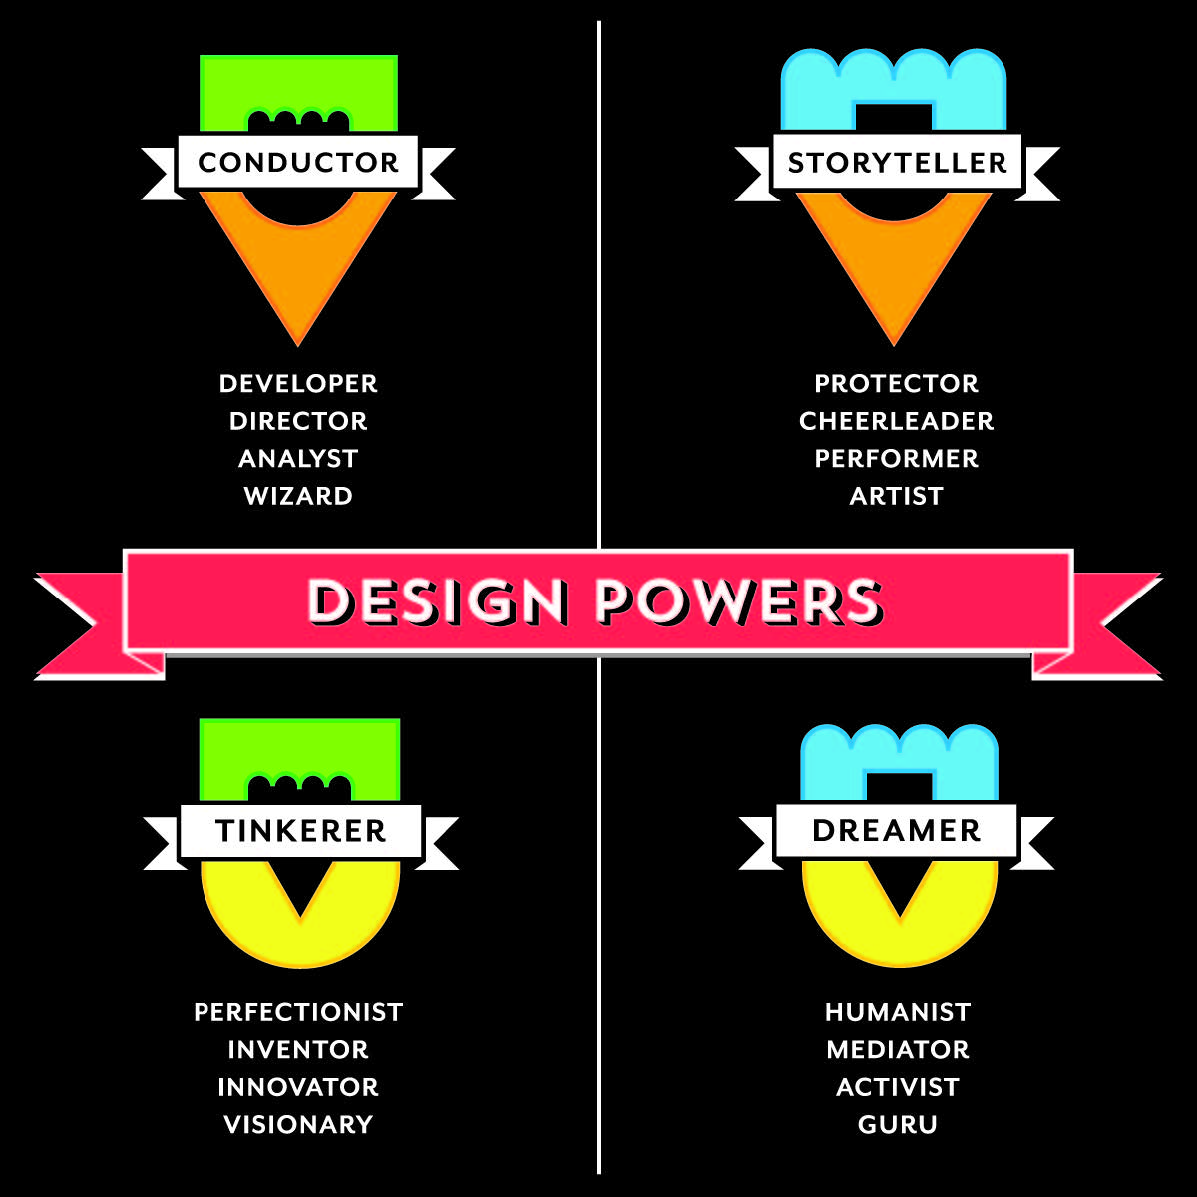 Figure 4: Each of the four dominant design profiles — Conductor, Storyteller, Tinkerer, and Dreamer — correlates with a group of four distinct design powers.